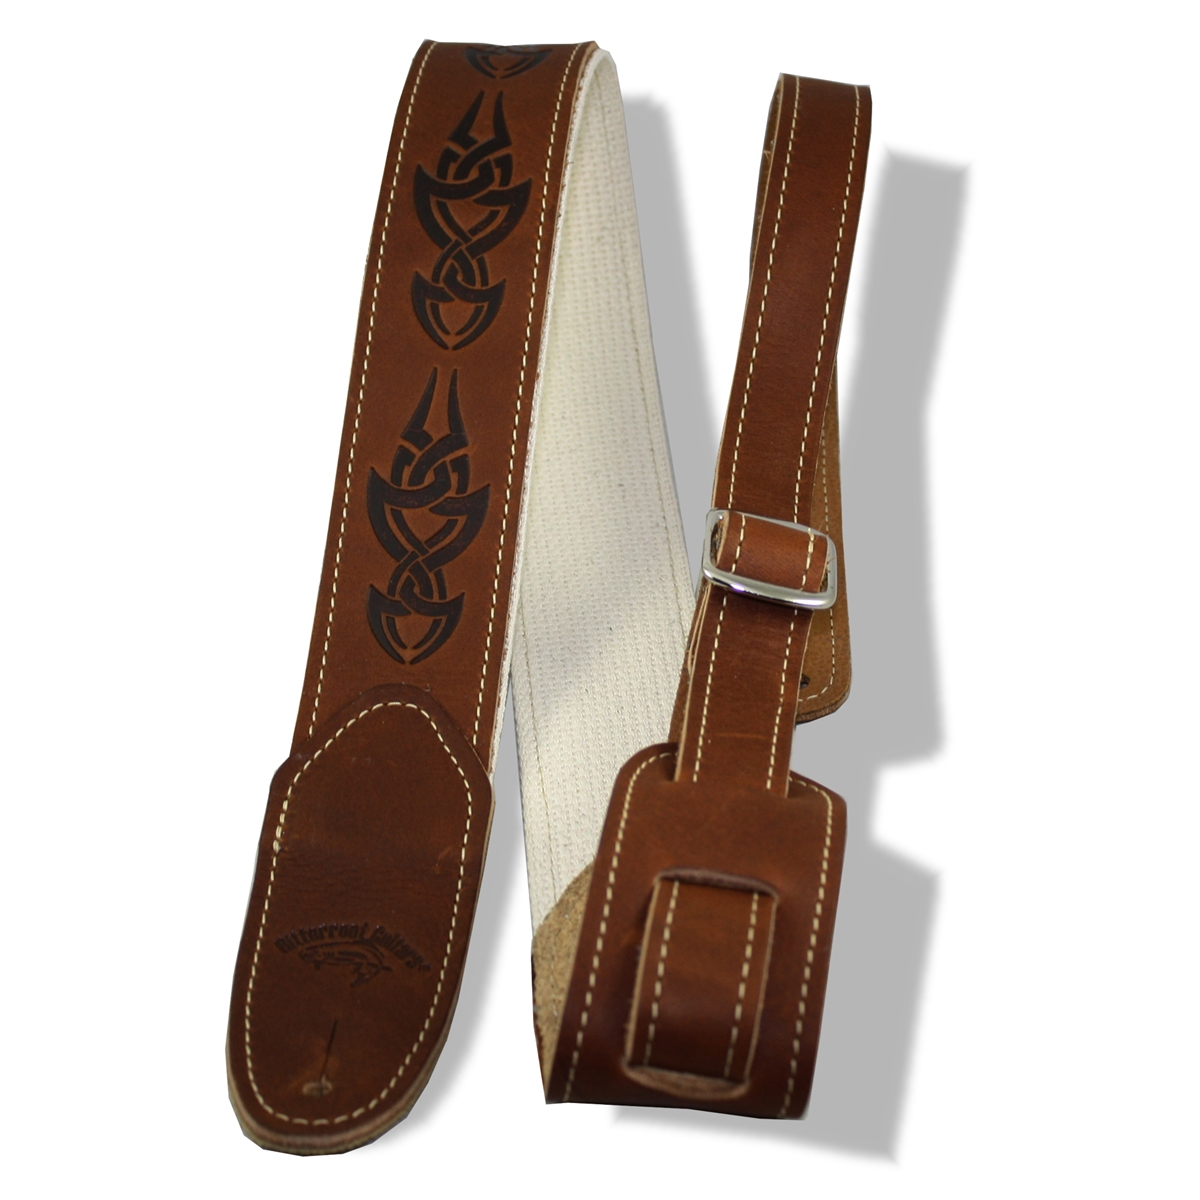 25baf243e31 guitar strap leather 2 brown cotton stitched backer embossed